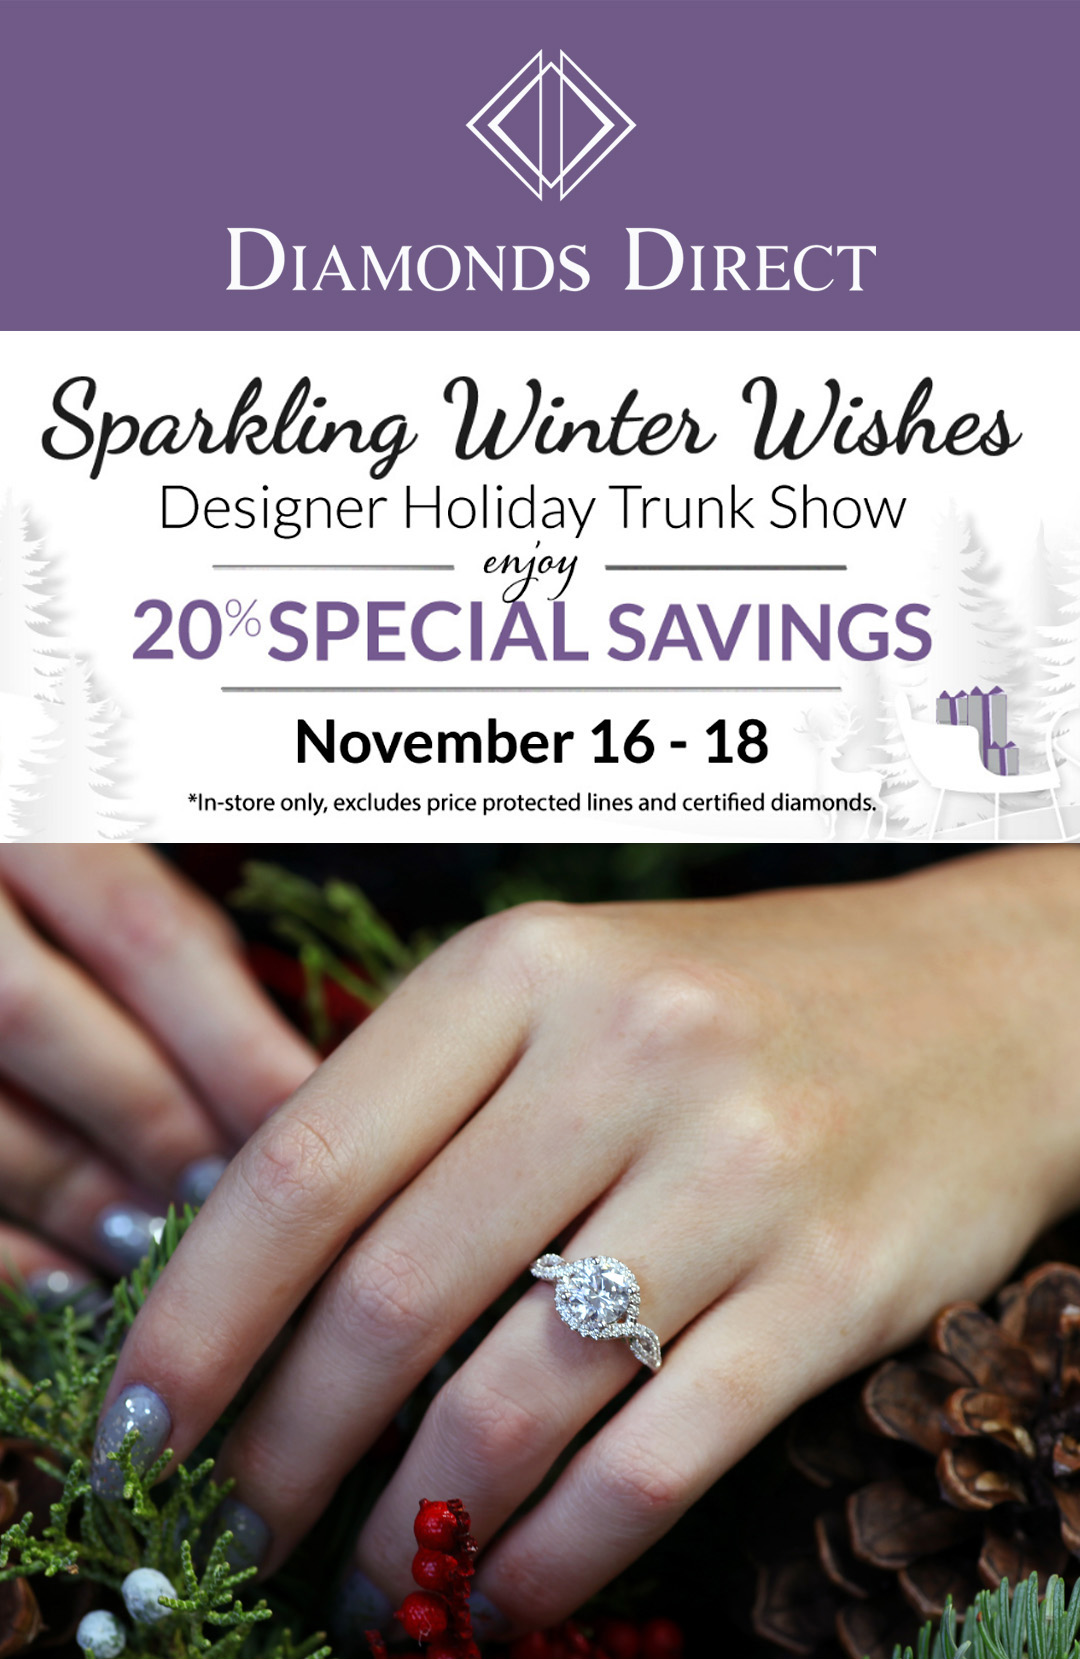 Attention Richmond, VA Residents! Visit the Diamonds Direct Designer Holiday Trunk Show Featuring Coast Diamond.